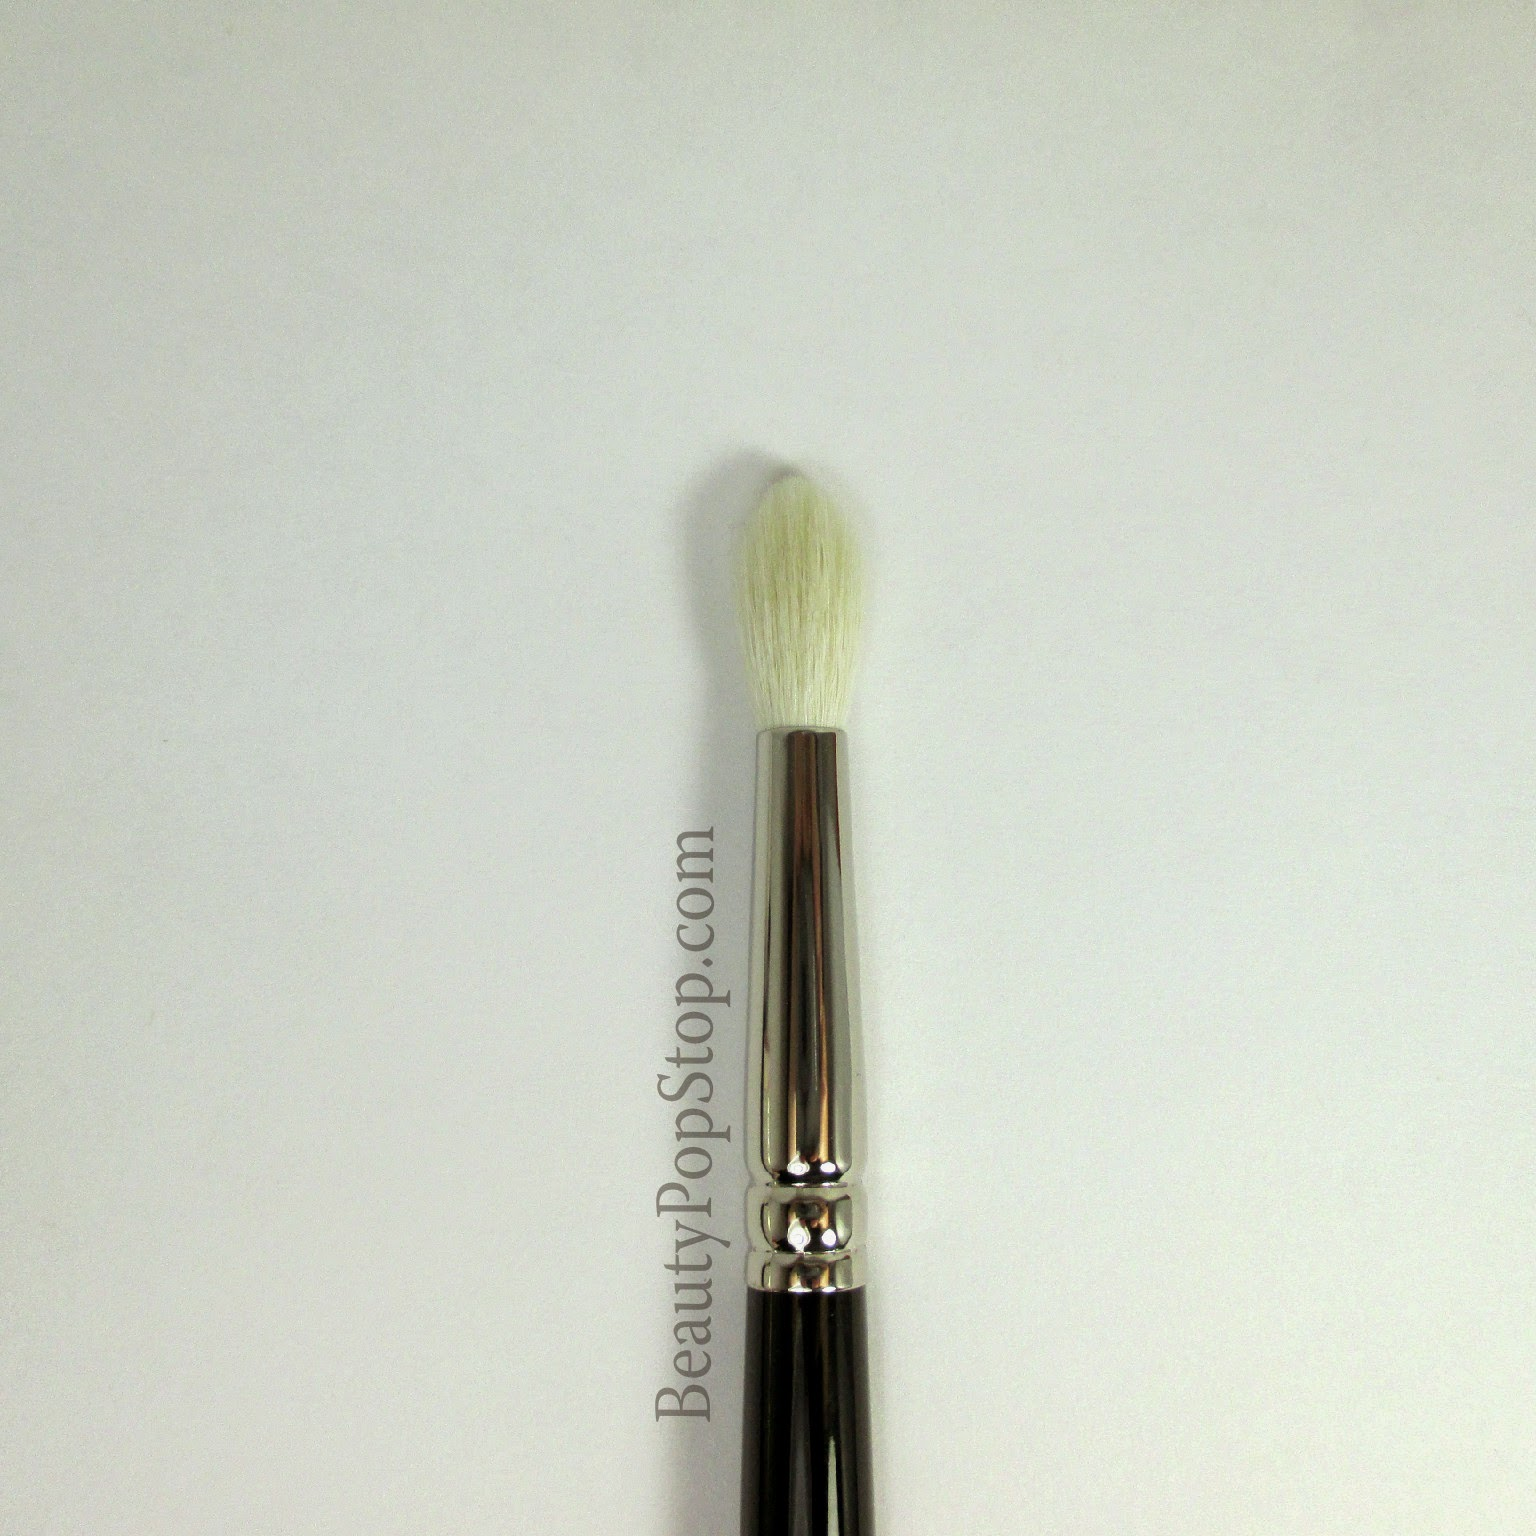 hakuhodo j142 japanese makeup brush review